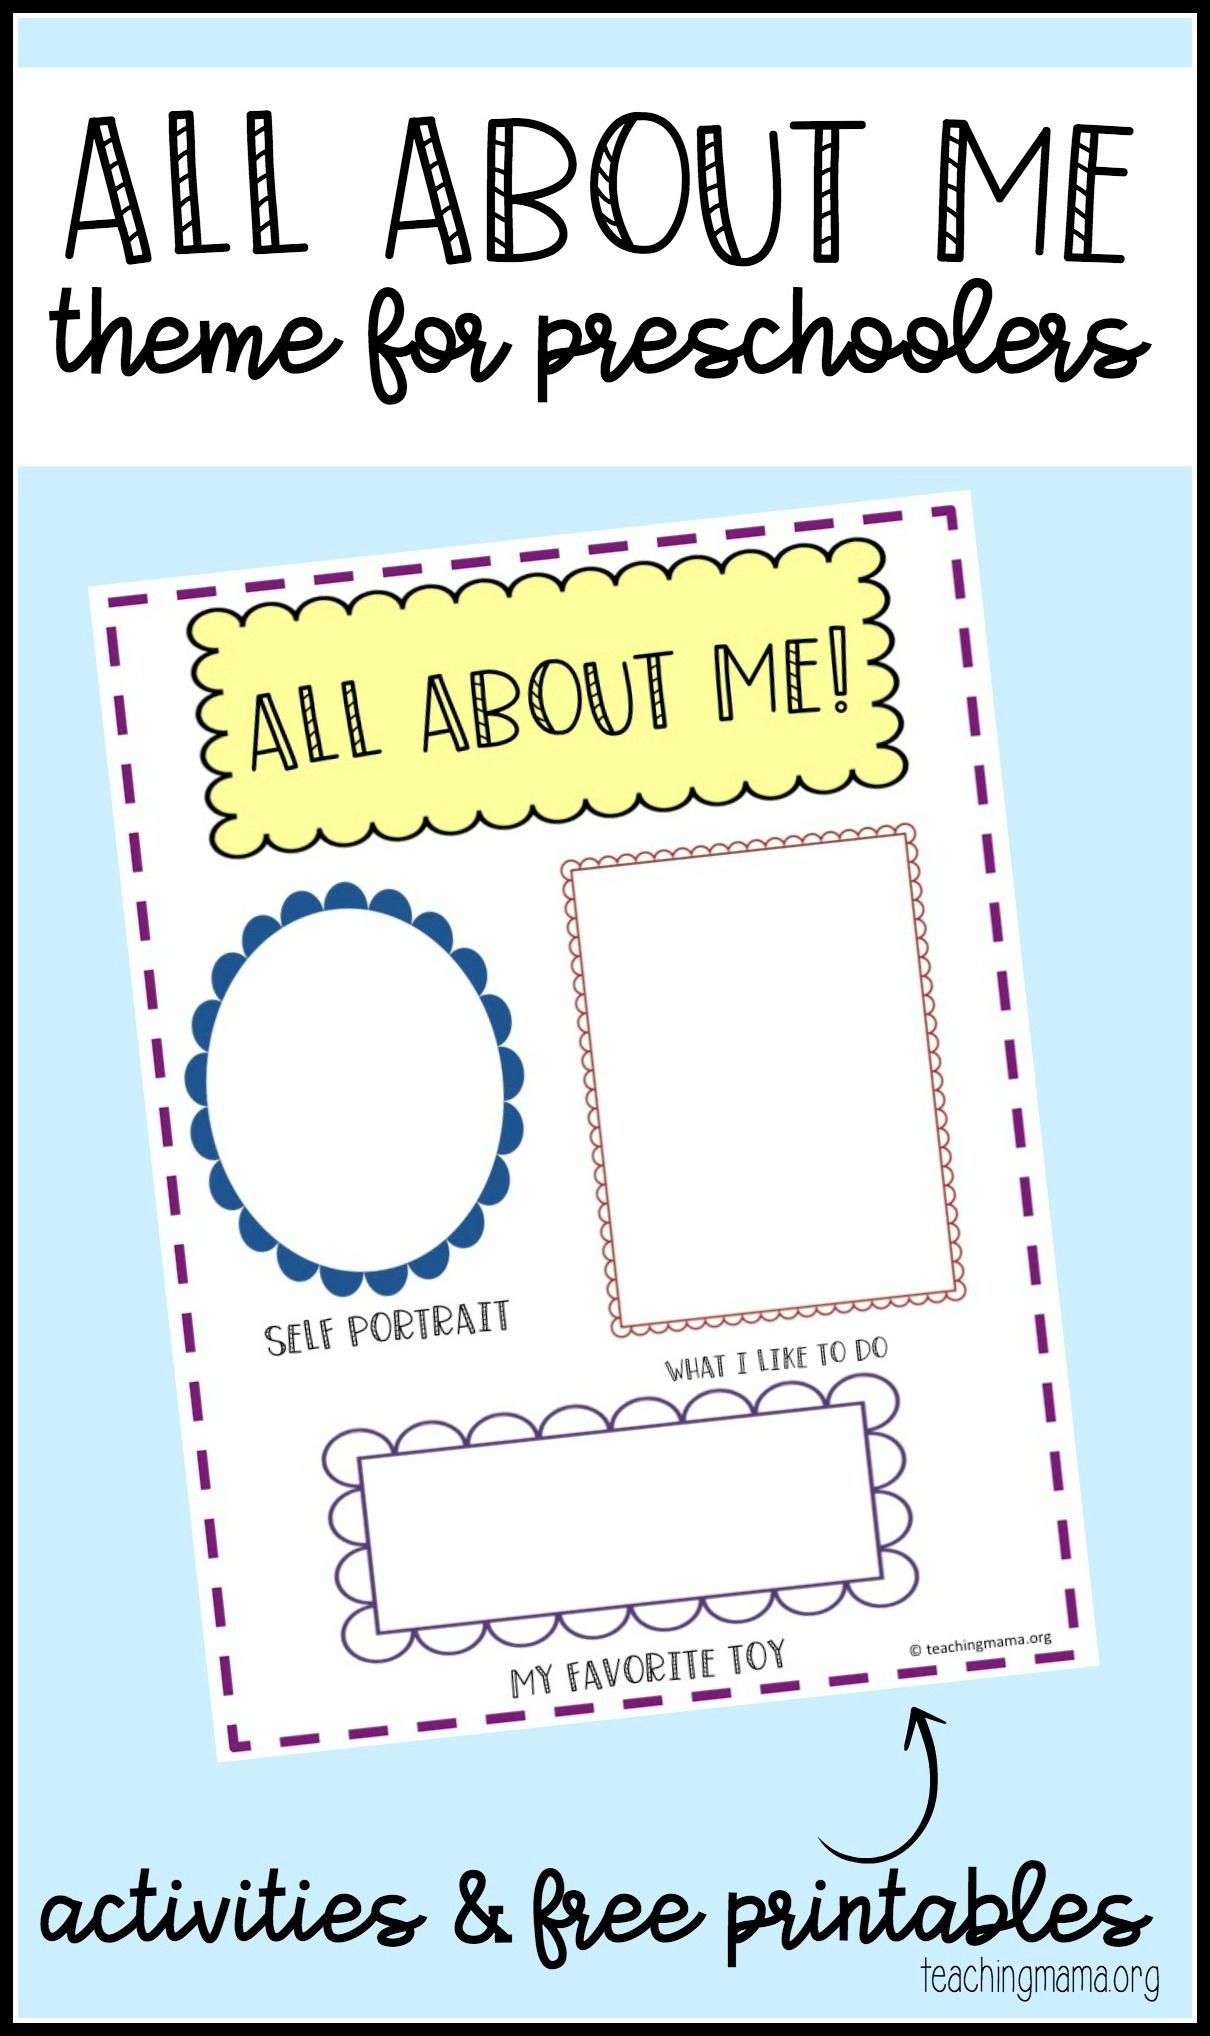 photo about All About Me Preschool Printable identified as All With regards to Me Preschool Topic - Free of charge Printable Early